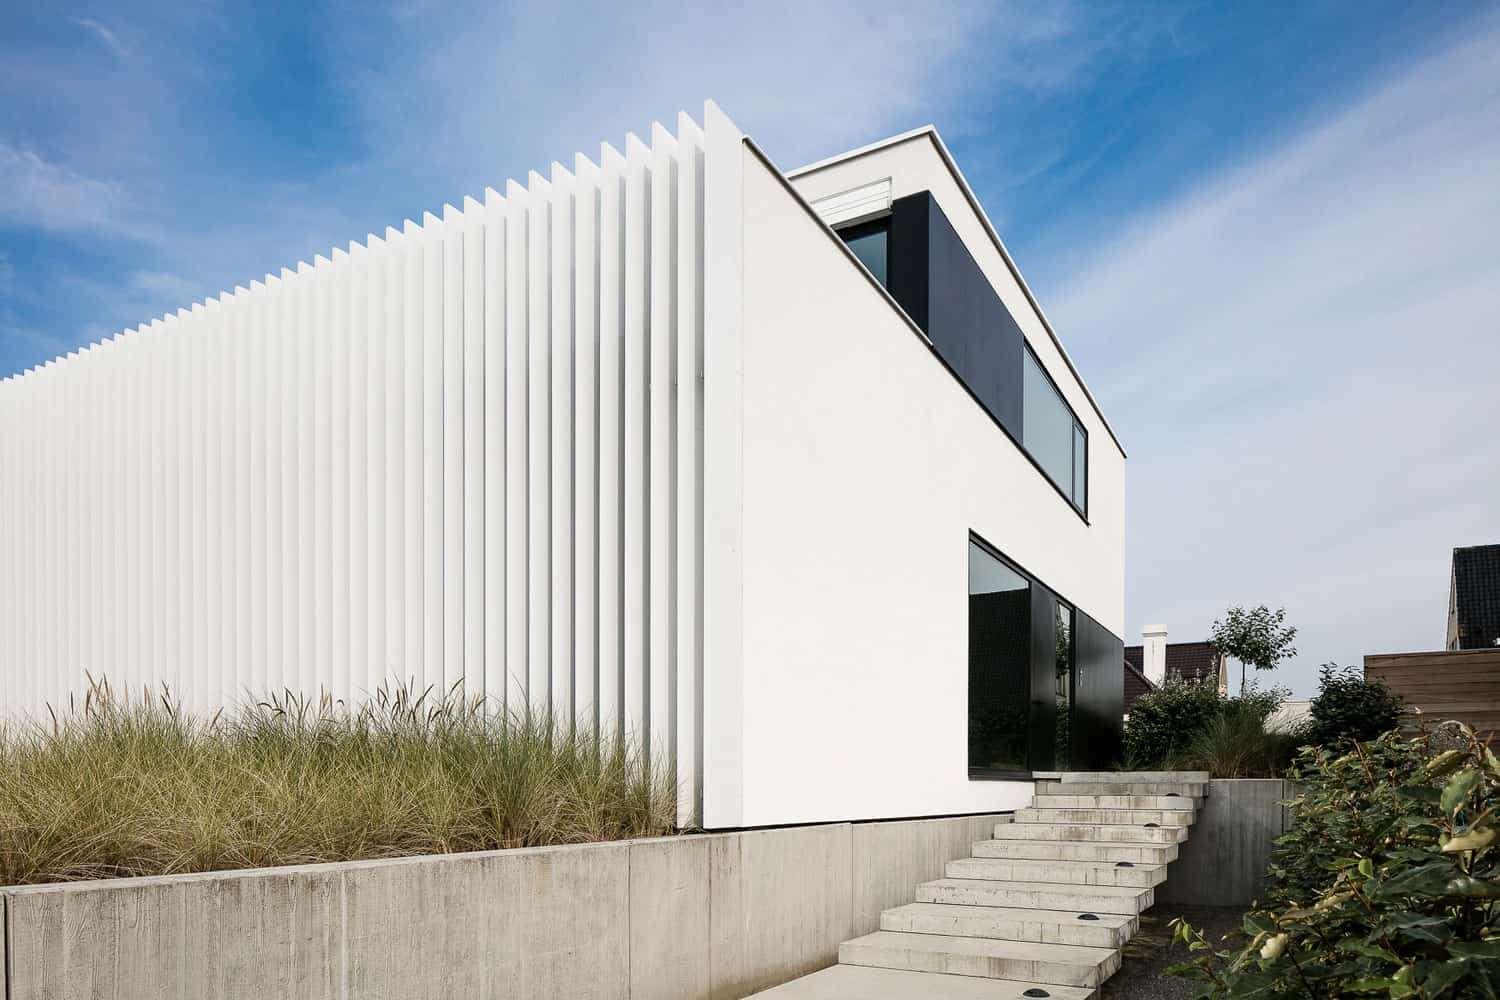 Beach House Designed by CUBYC Architects on the Coast of Belgium